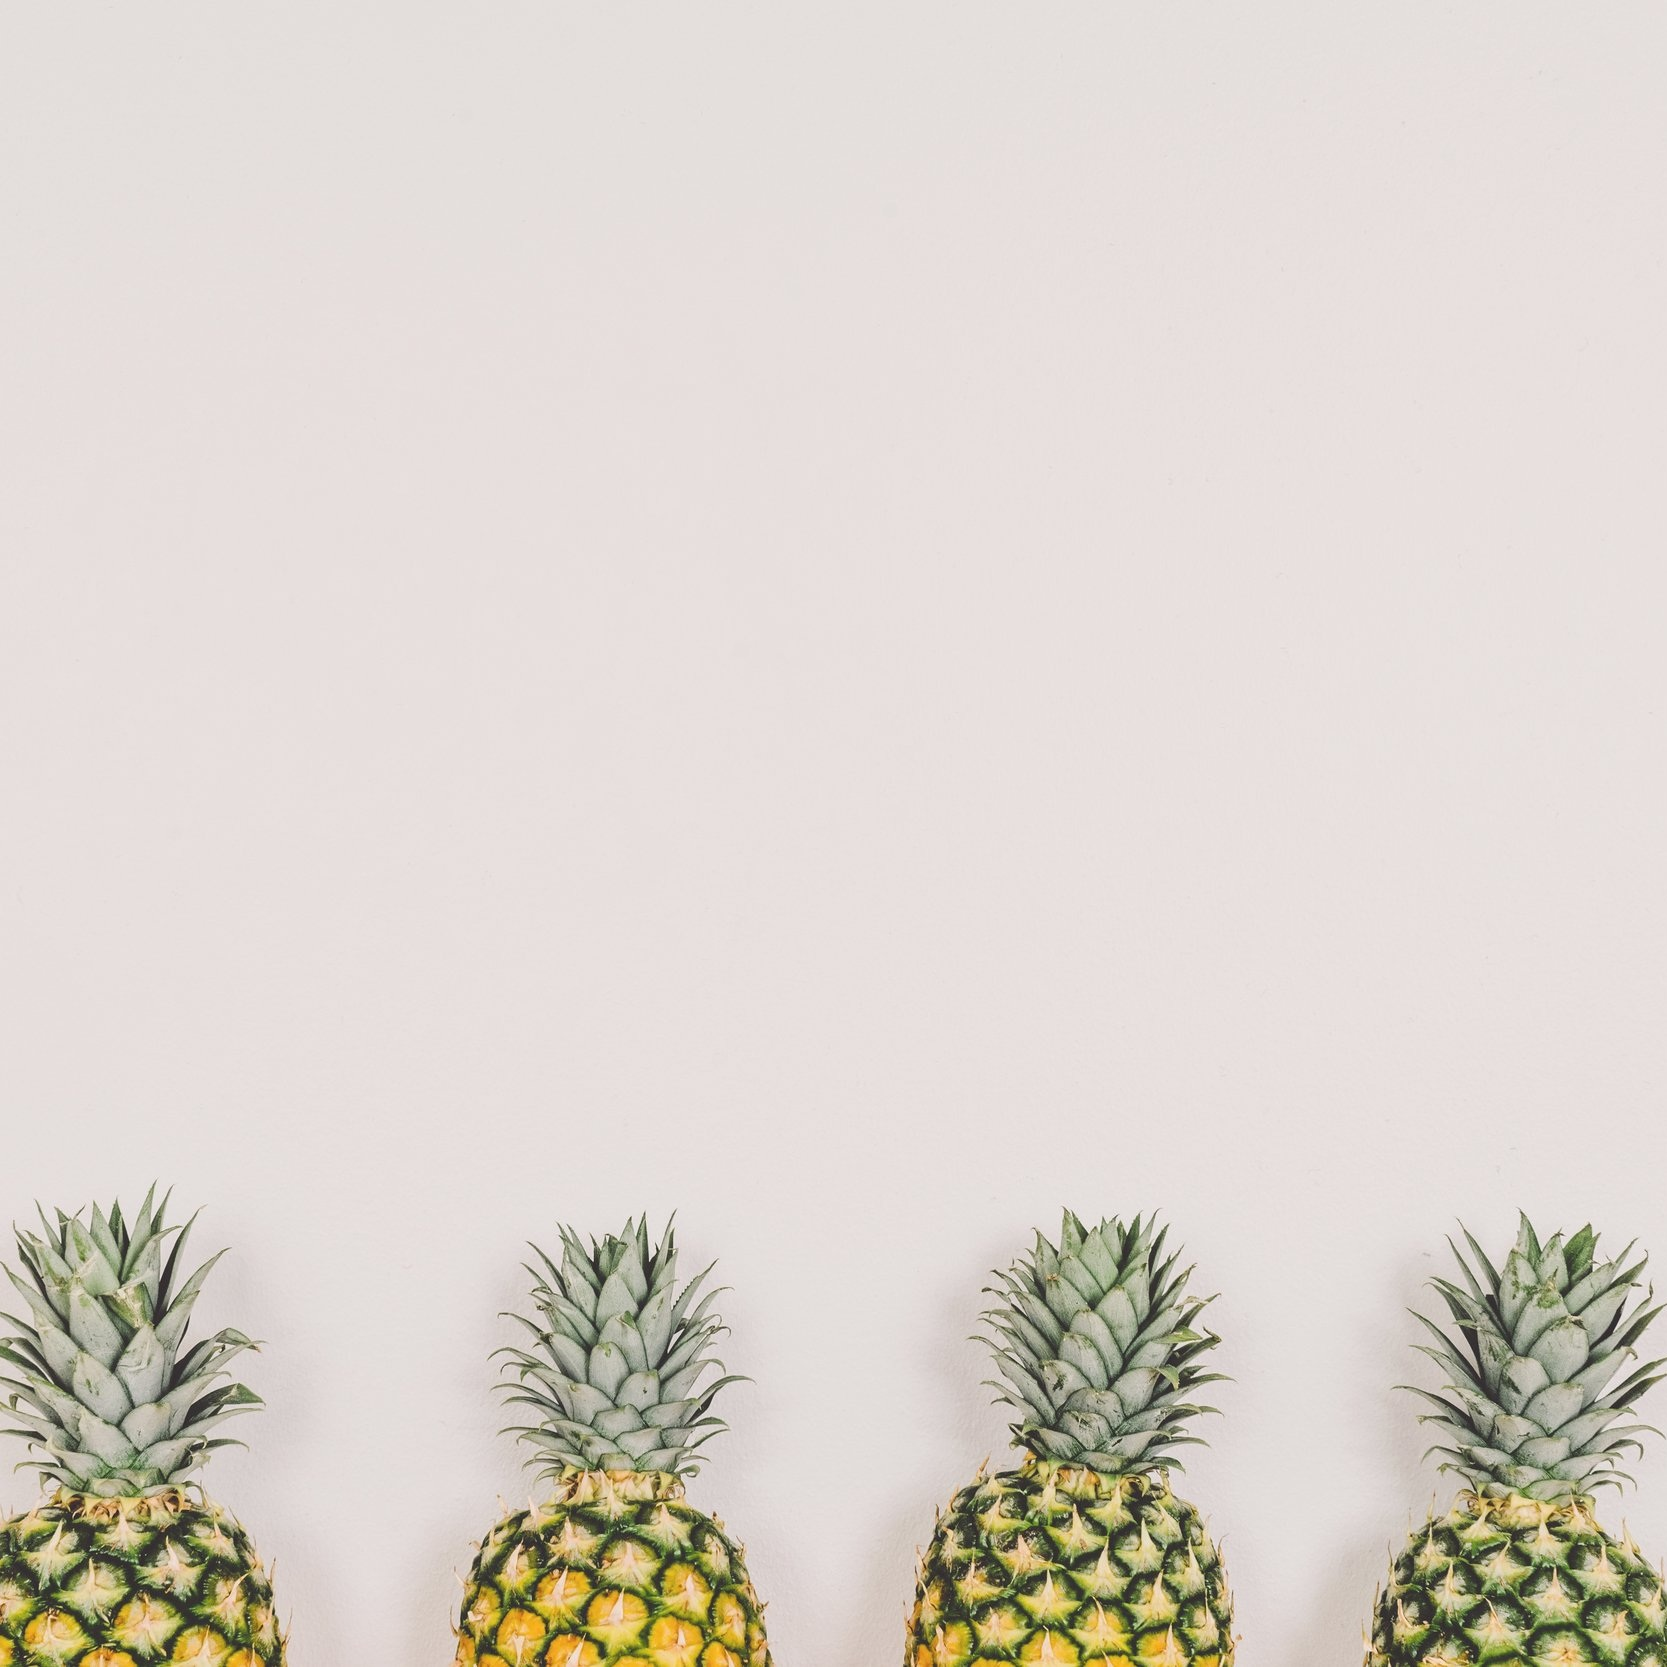 pineapple-supply-co-124390-unsplash.jpg